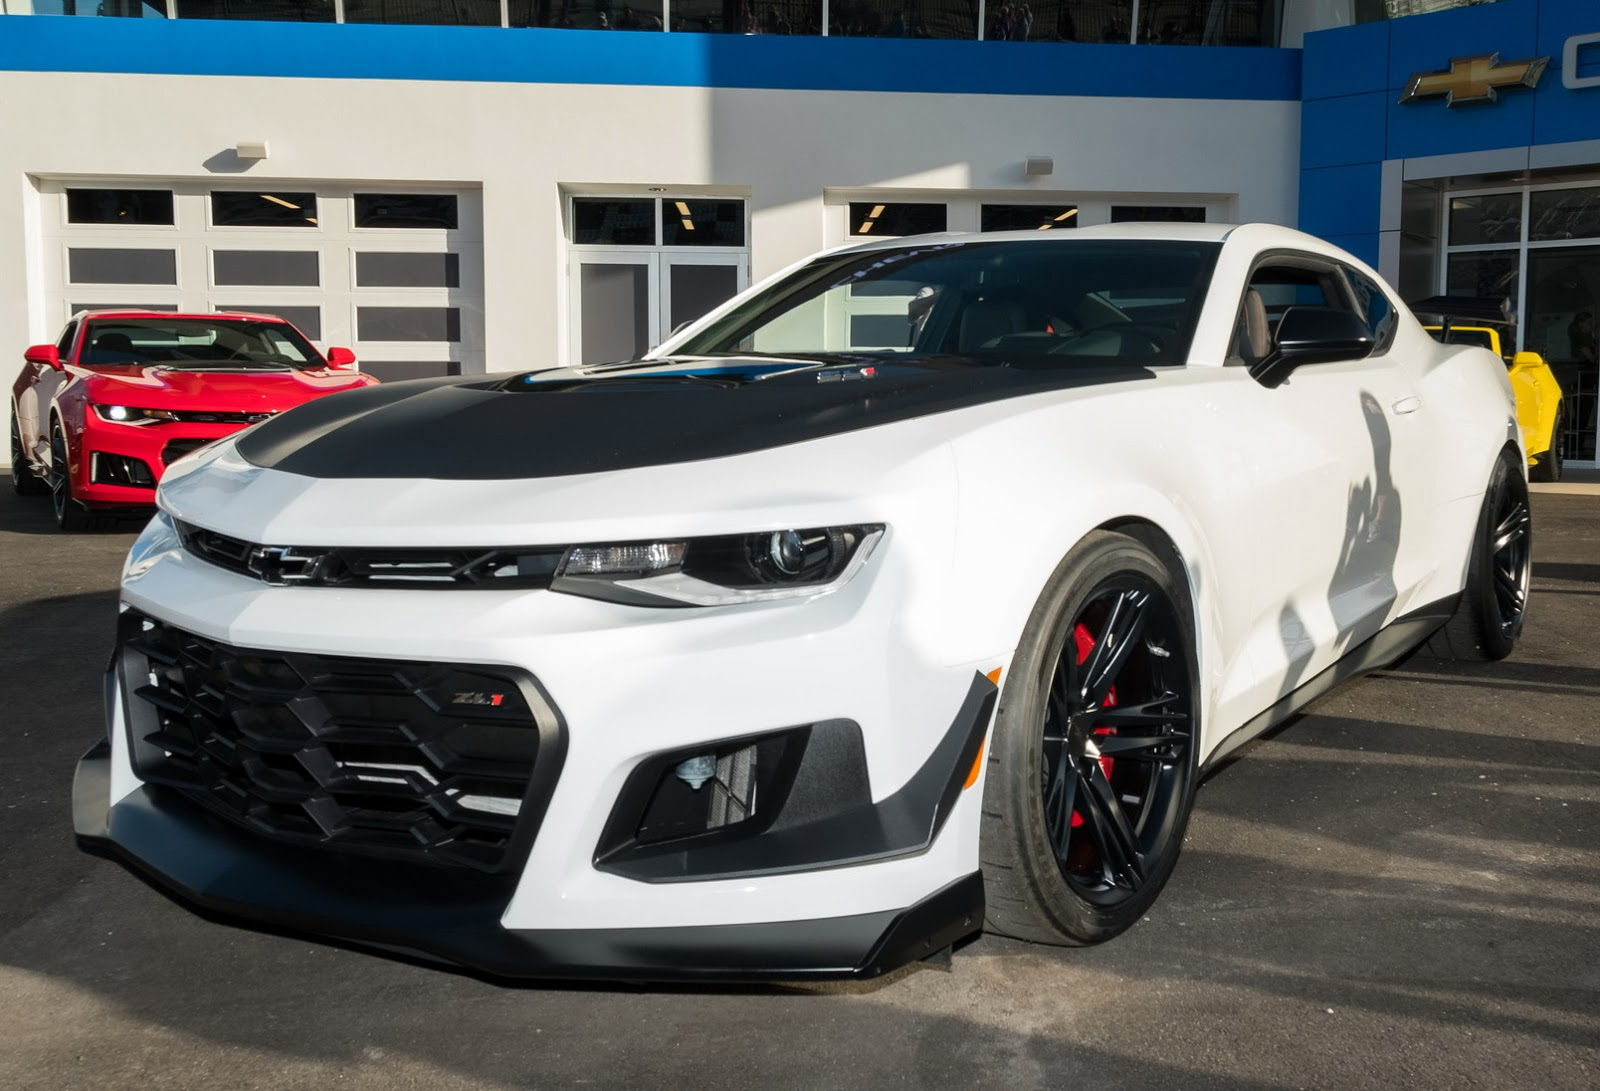 new 2018 chevrolet camaro zl1 1le puts on its tracksuit carscoops. Black Bedroom Furniture Sets. Home Design Ideas